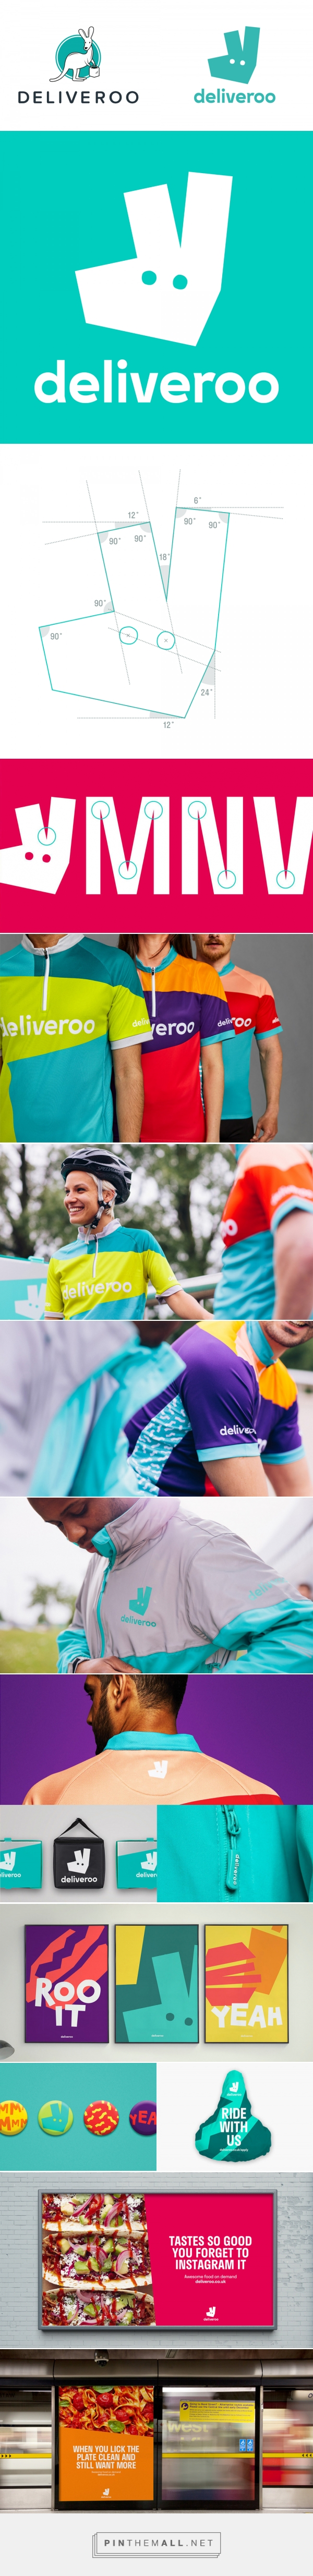 82c2d2e04 Brand New  New Logo and Identity for Deliveroo by DesignStudio - created  via…